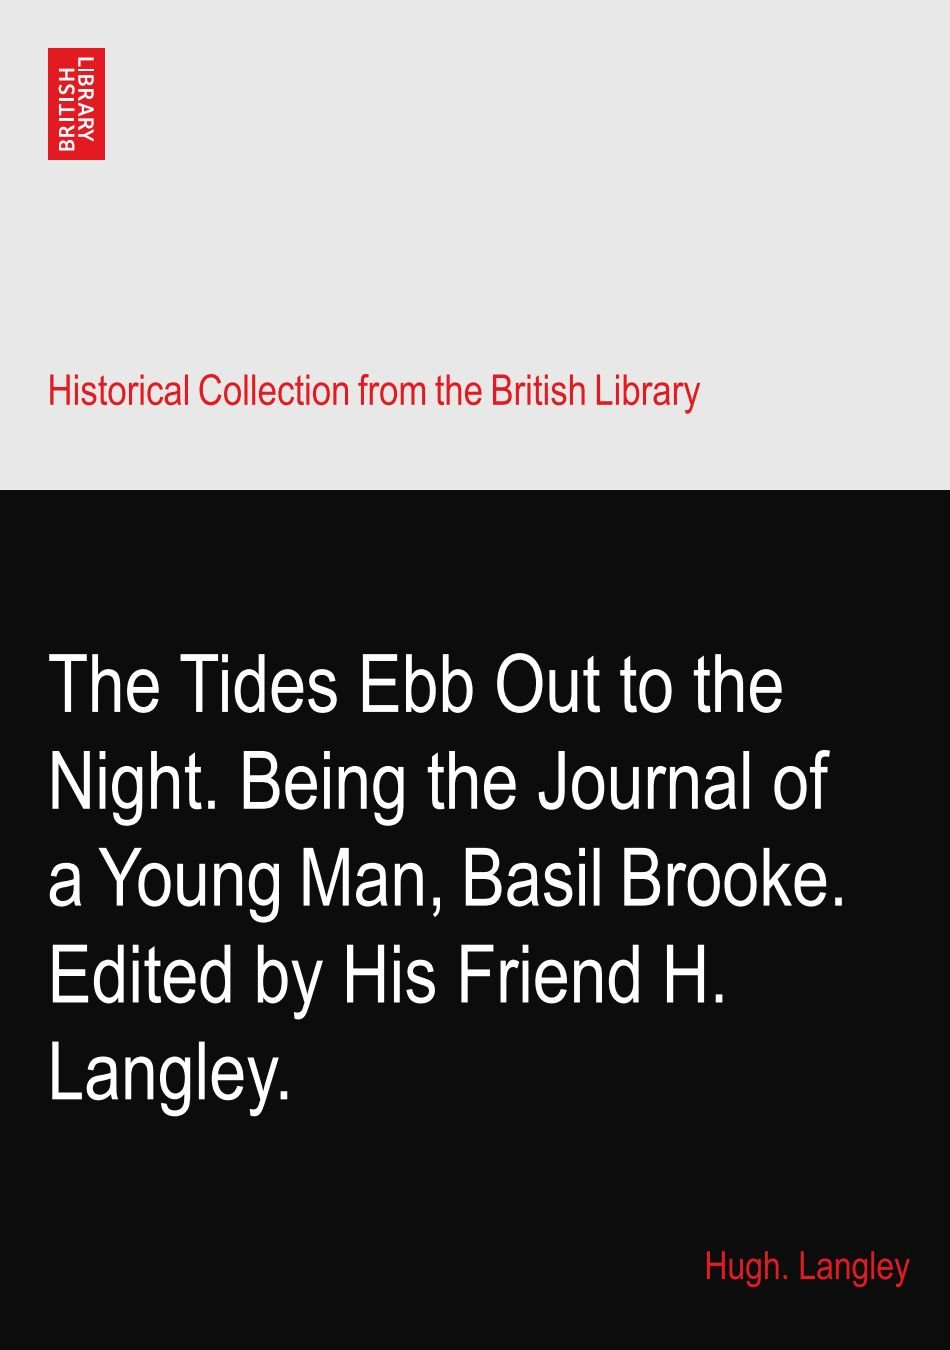 Download The Tides Ebb Out to the Night. Being the Journal of a Young Man, Basil Brooke. Edited by His Friend H. Langley. ebook